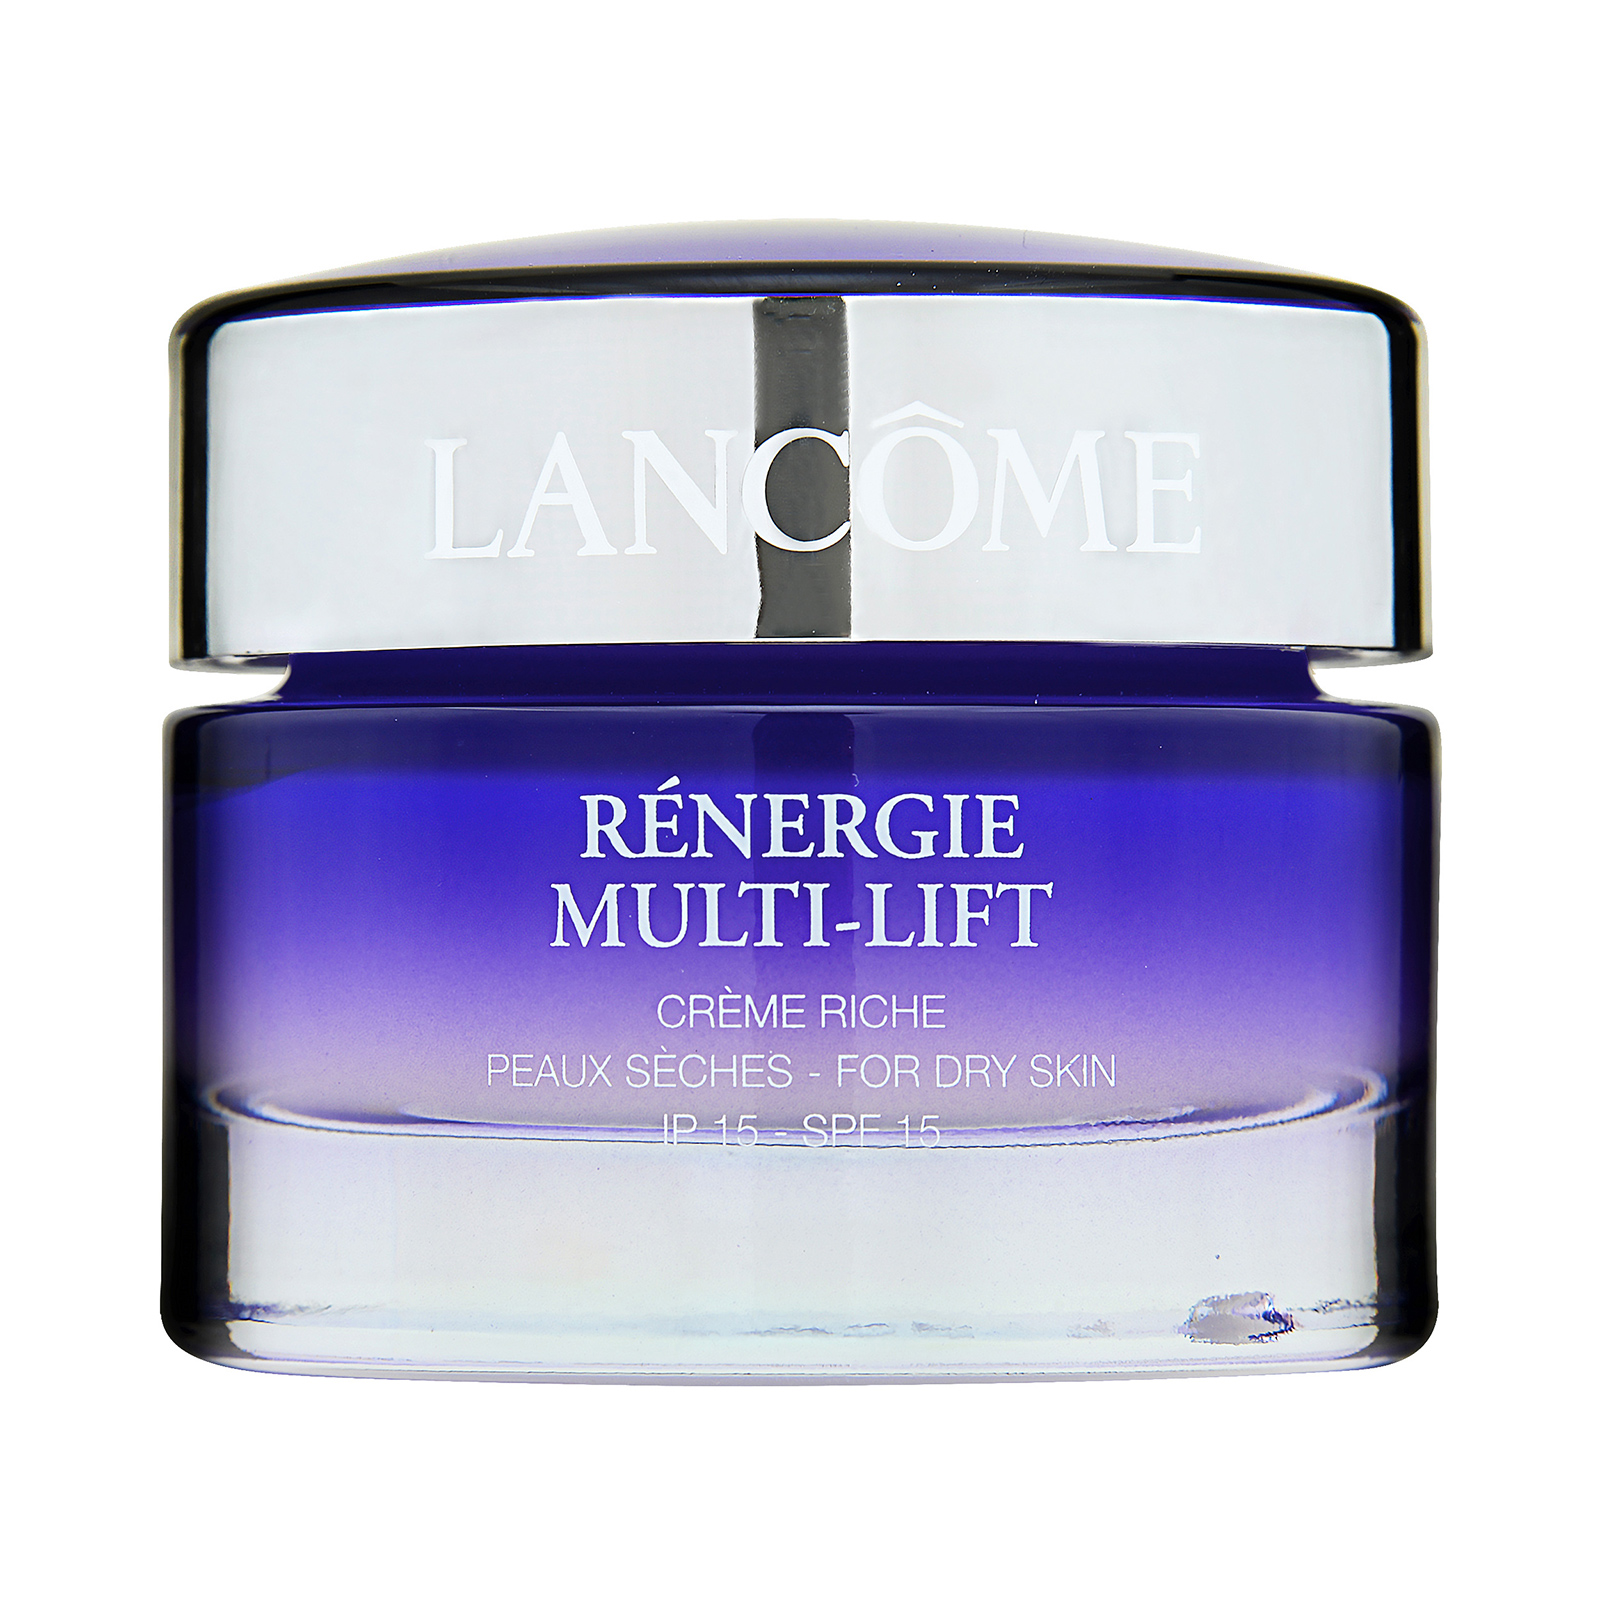 LANCÔME Renergie Multi-Lift Redefining Lifting Rich Cream SPF15 (For Dry Skin) (New Version) 1.7oz, 50ml